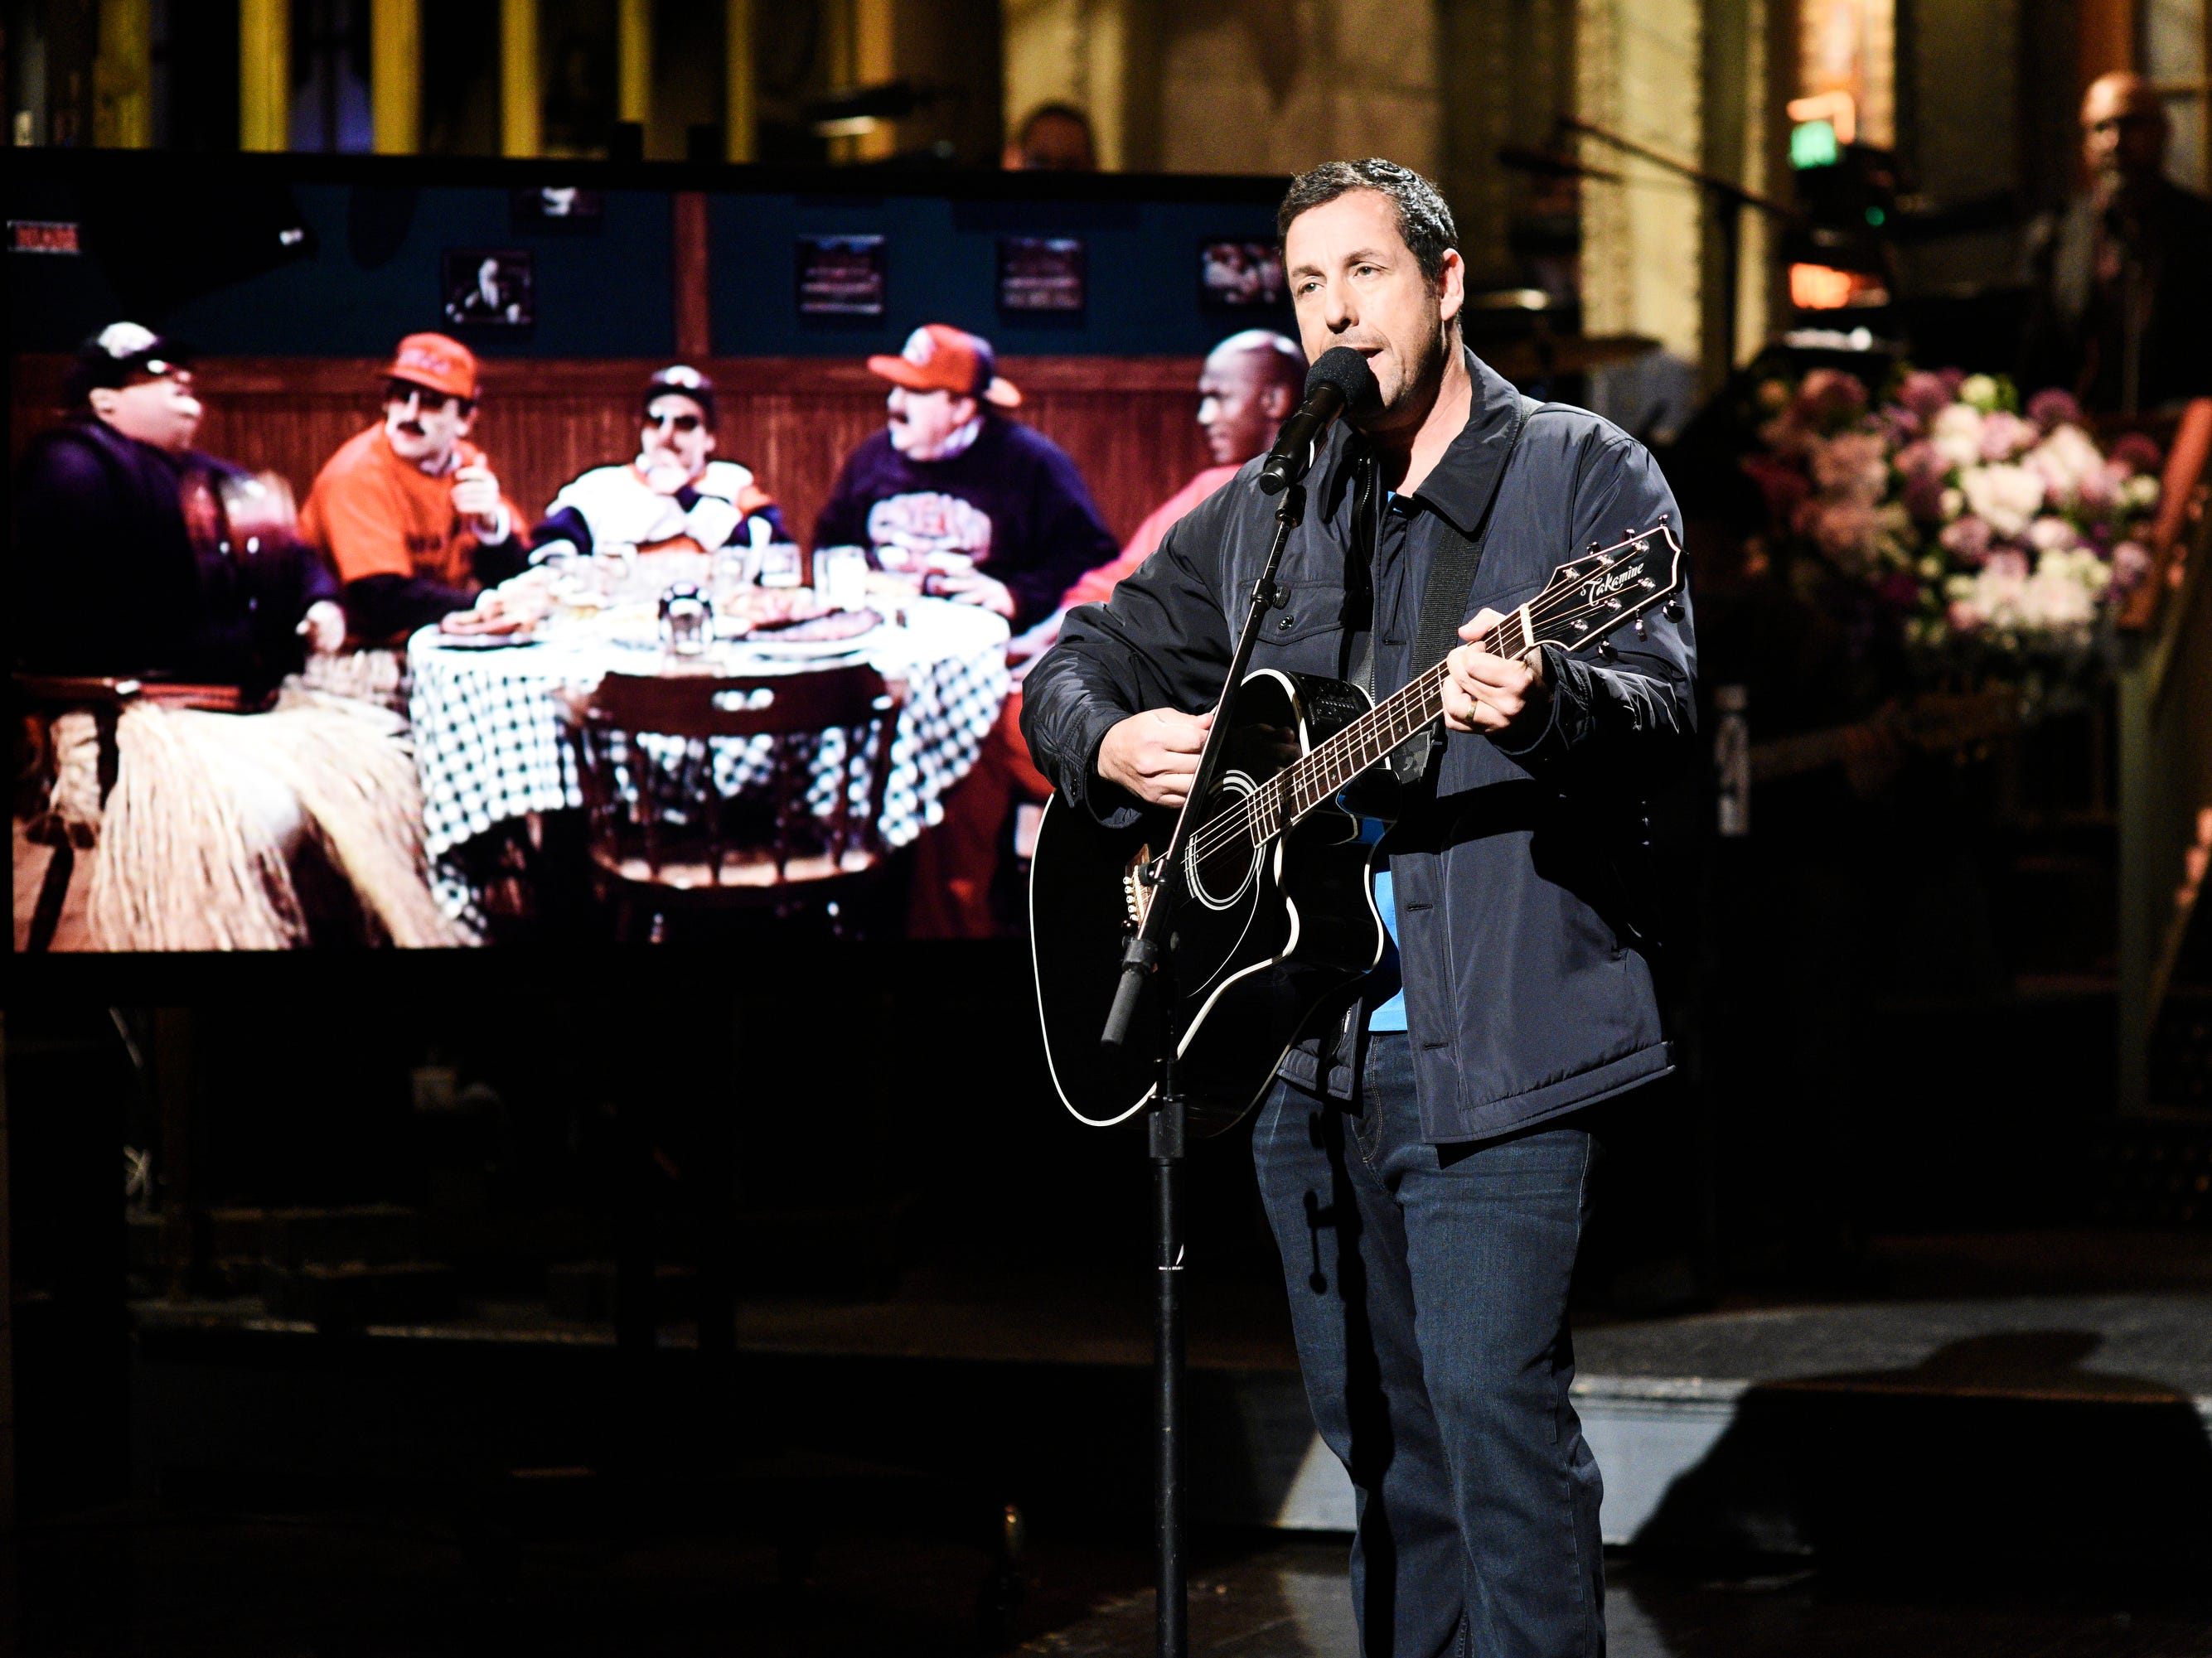 """Sandler ended the show with a song to remember his friend and former """"SNL"""" cast mate Chris Farley."""